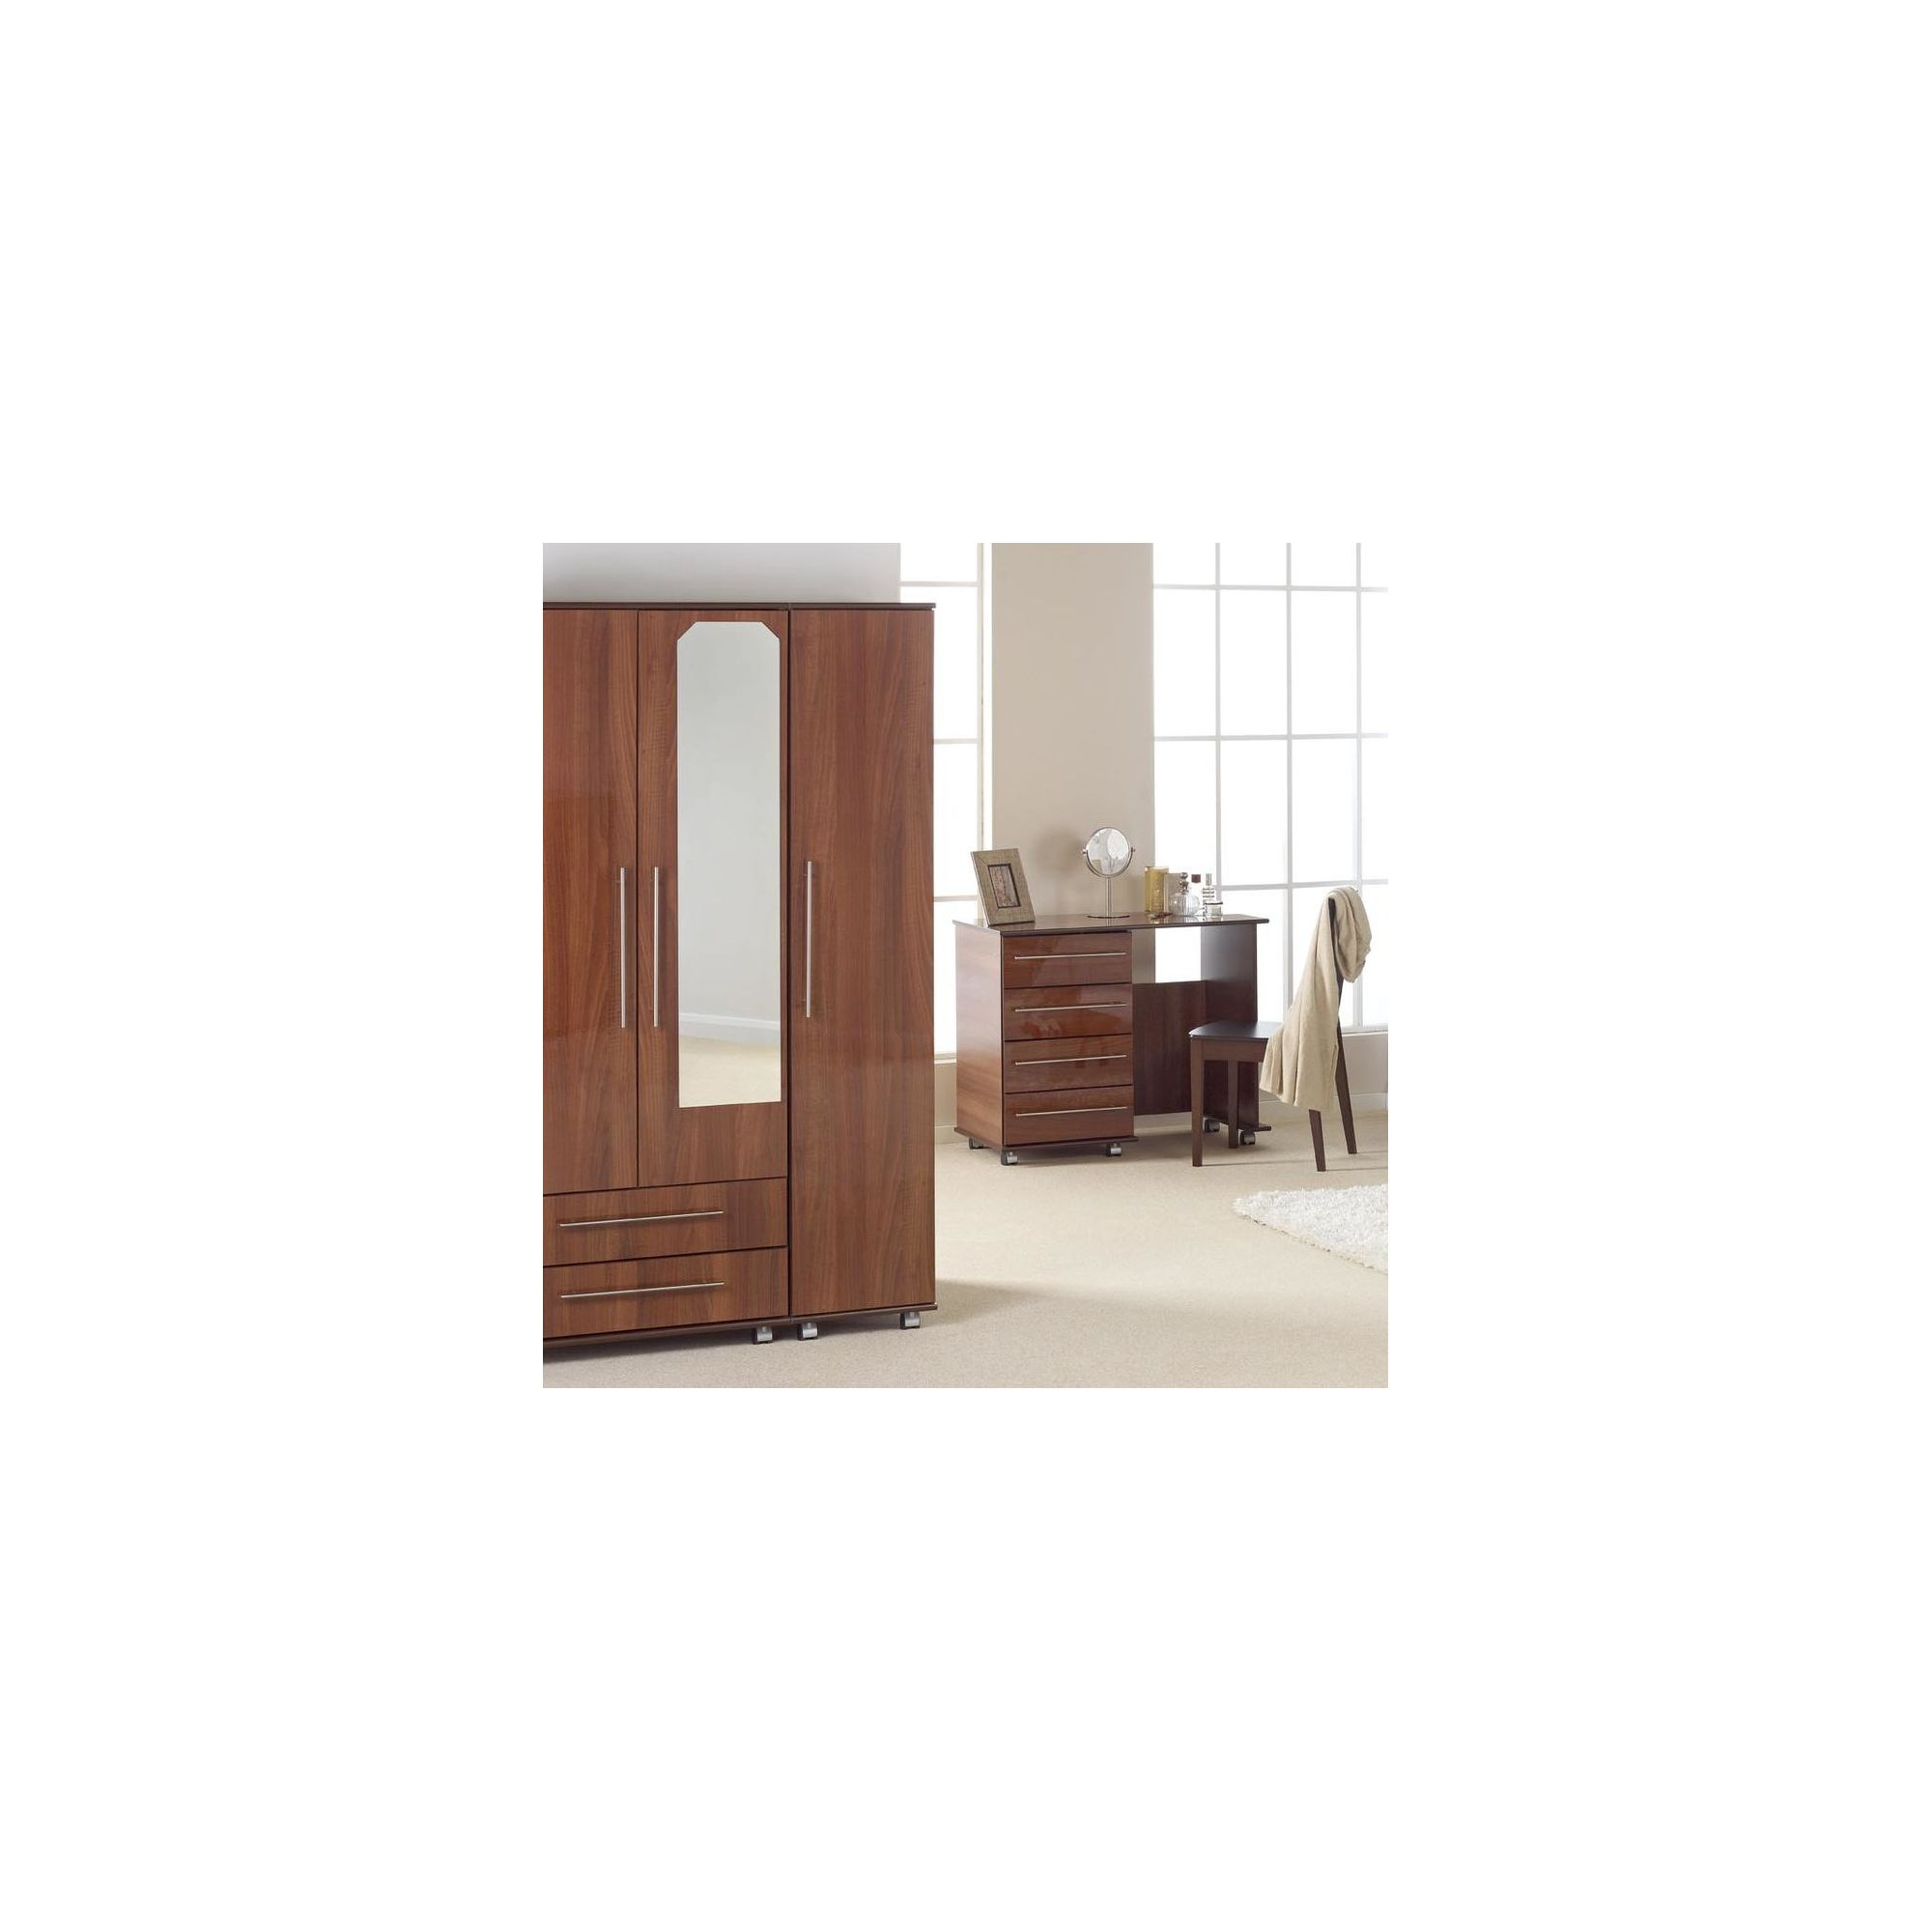 Ideal Furniture New York Triple Wardrobe with Two Drawers and Mirror - Oak at Tesco Direct